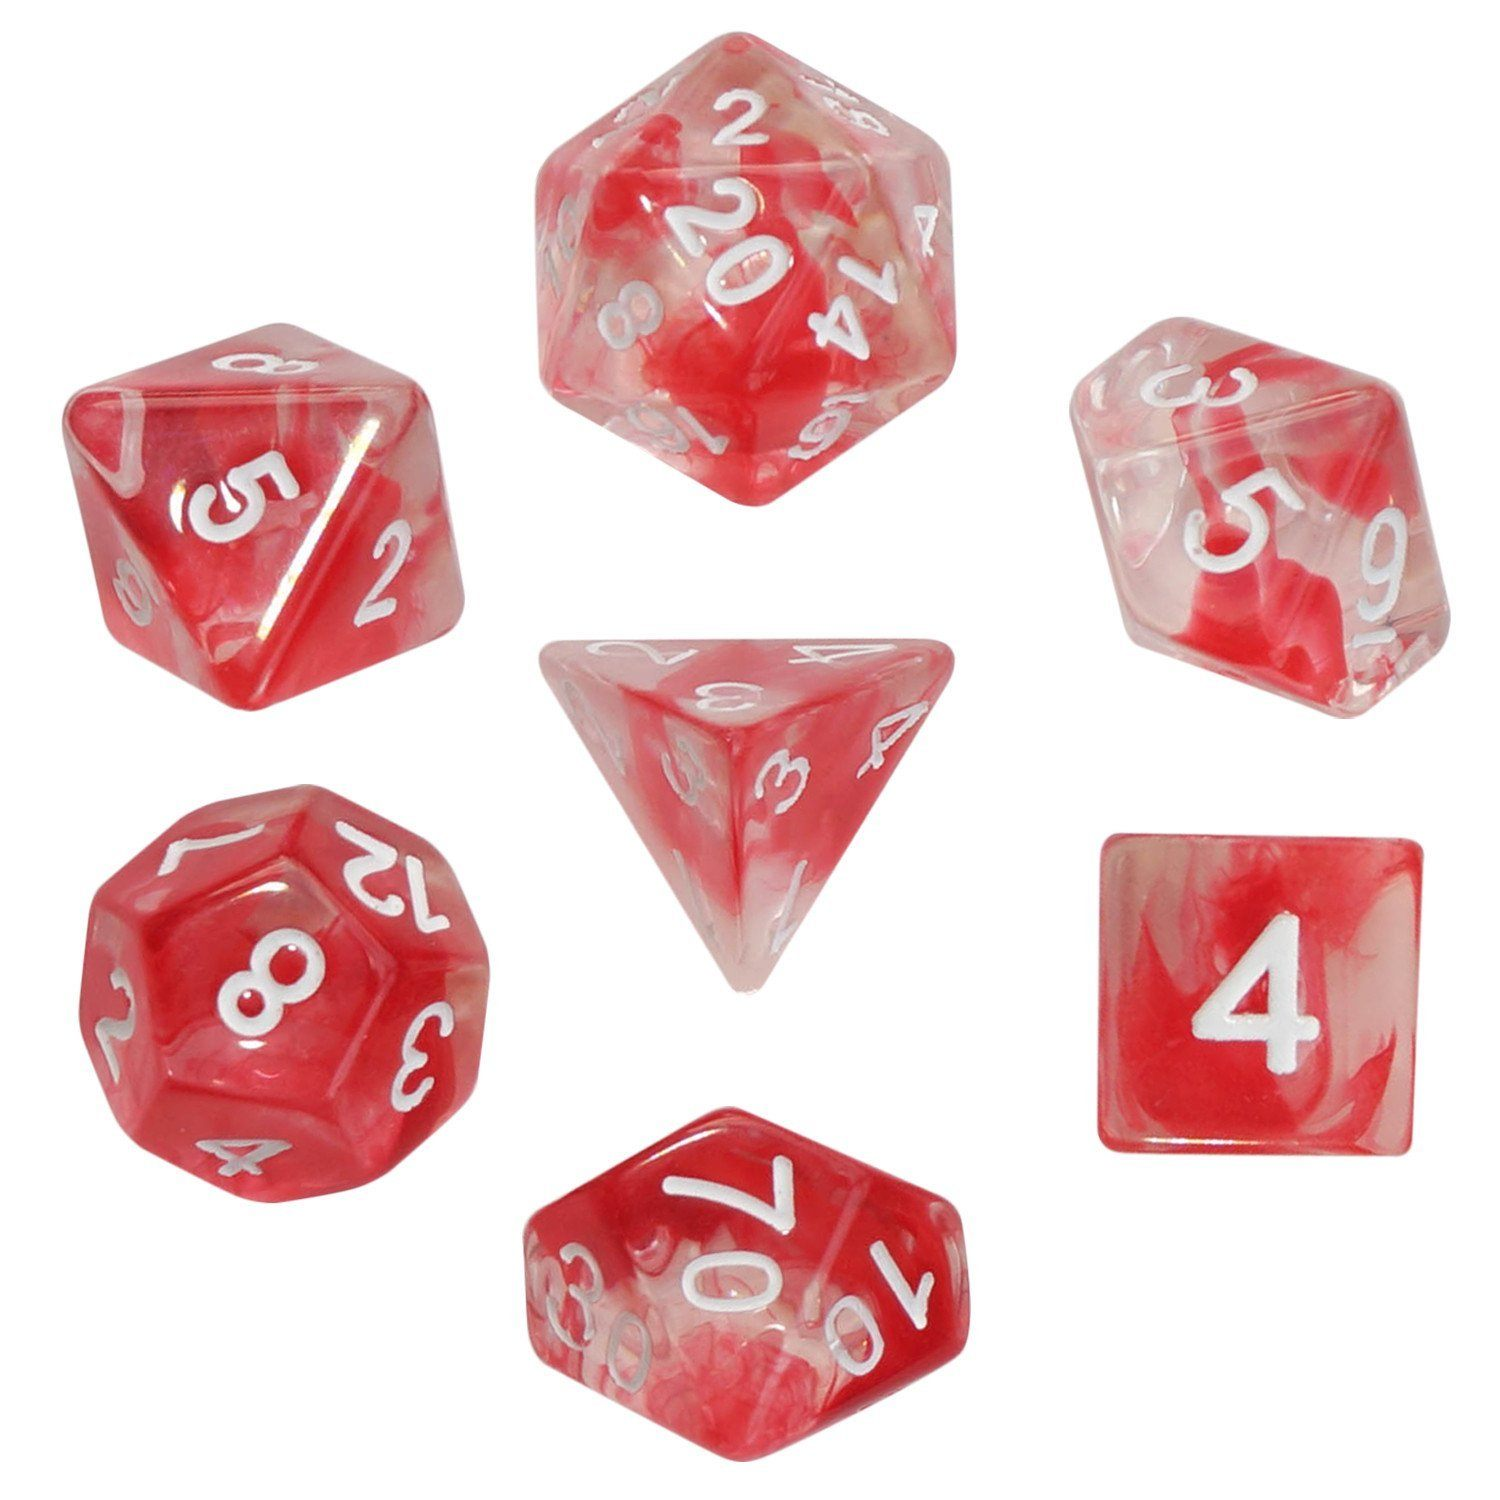 Aether Stone Red Color with White Numbers - Pack of 7 Polyhedral Dice (7 Die in Set) | Role Playing Game Dice | D4, D6, D8, D10, D%, D12, and D20